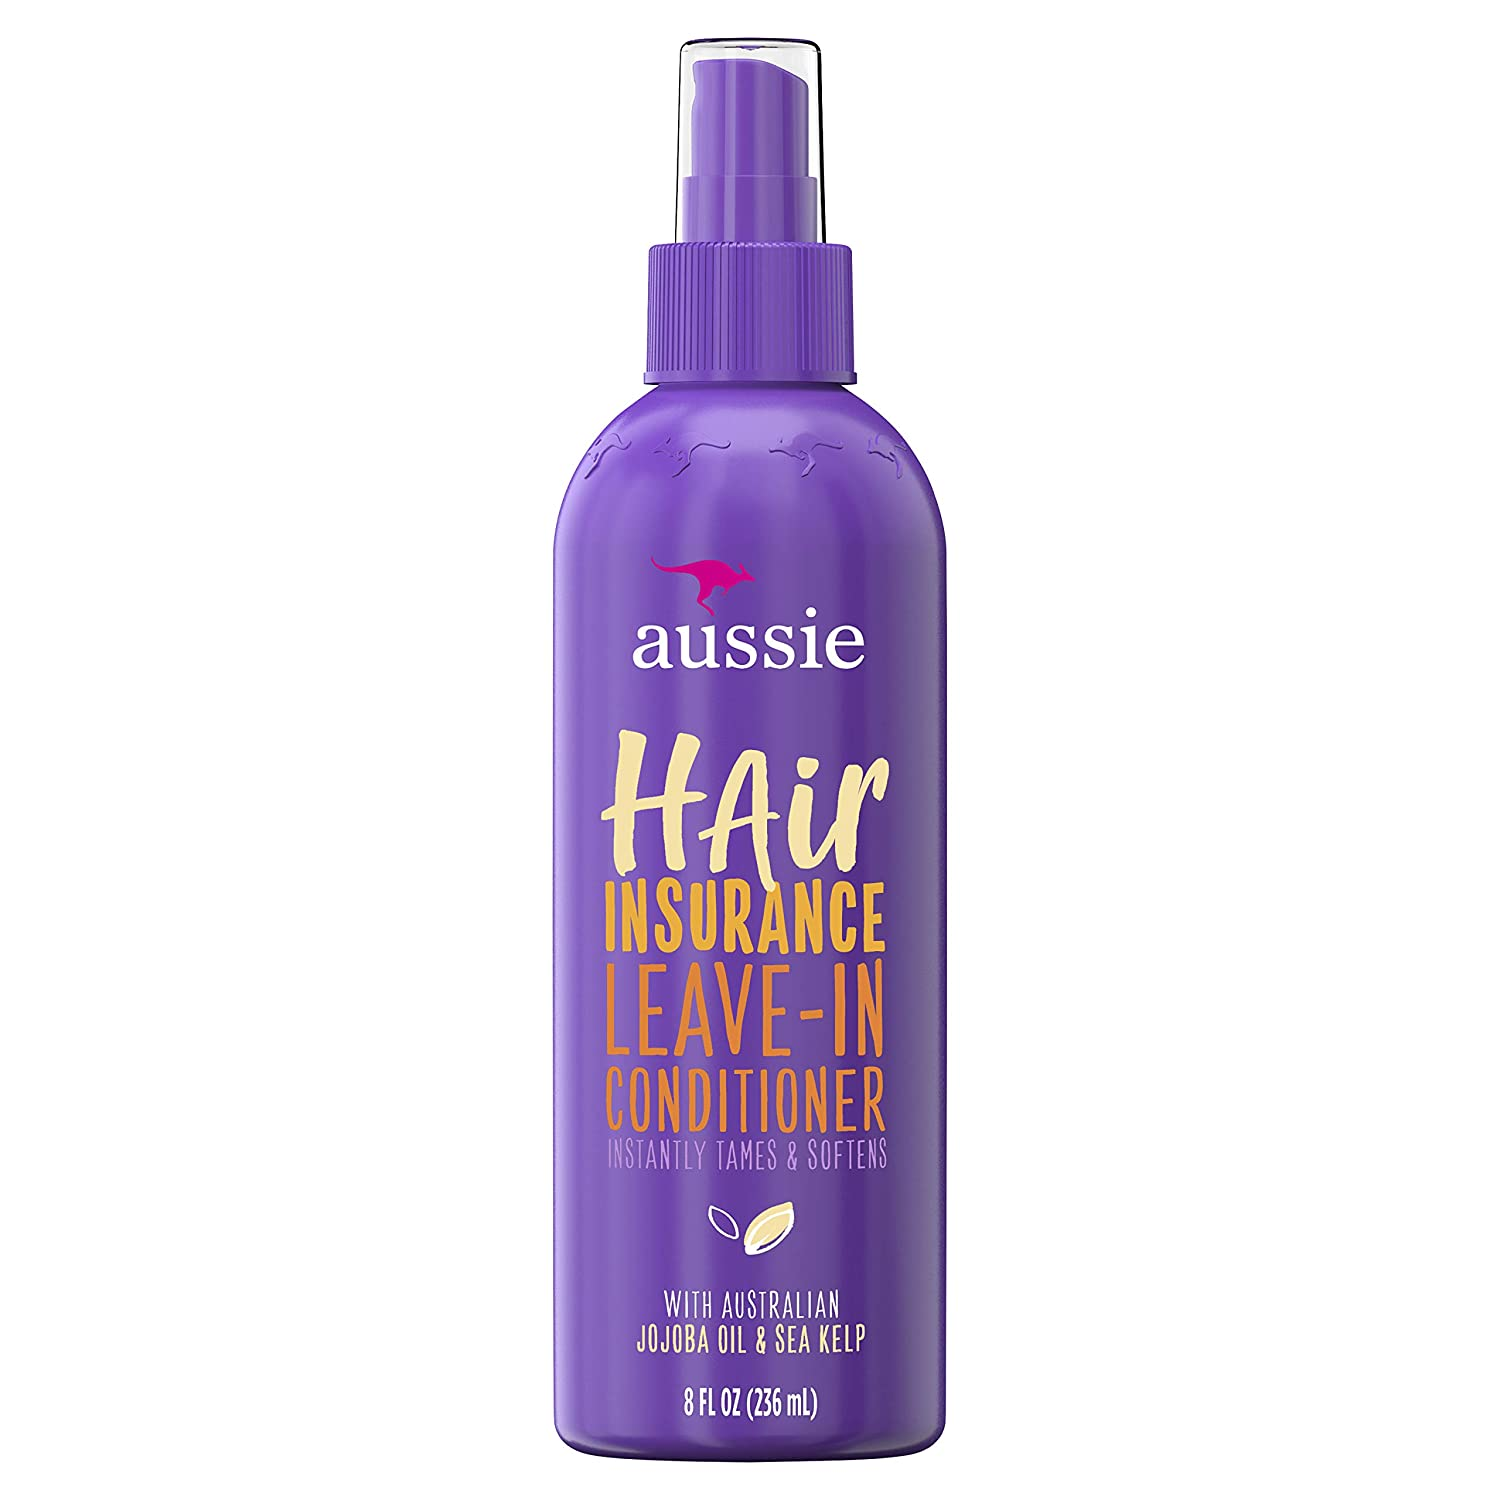 Aussie Hair Insurance Leave-In Conditioner